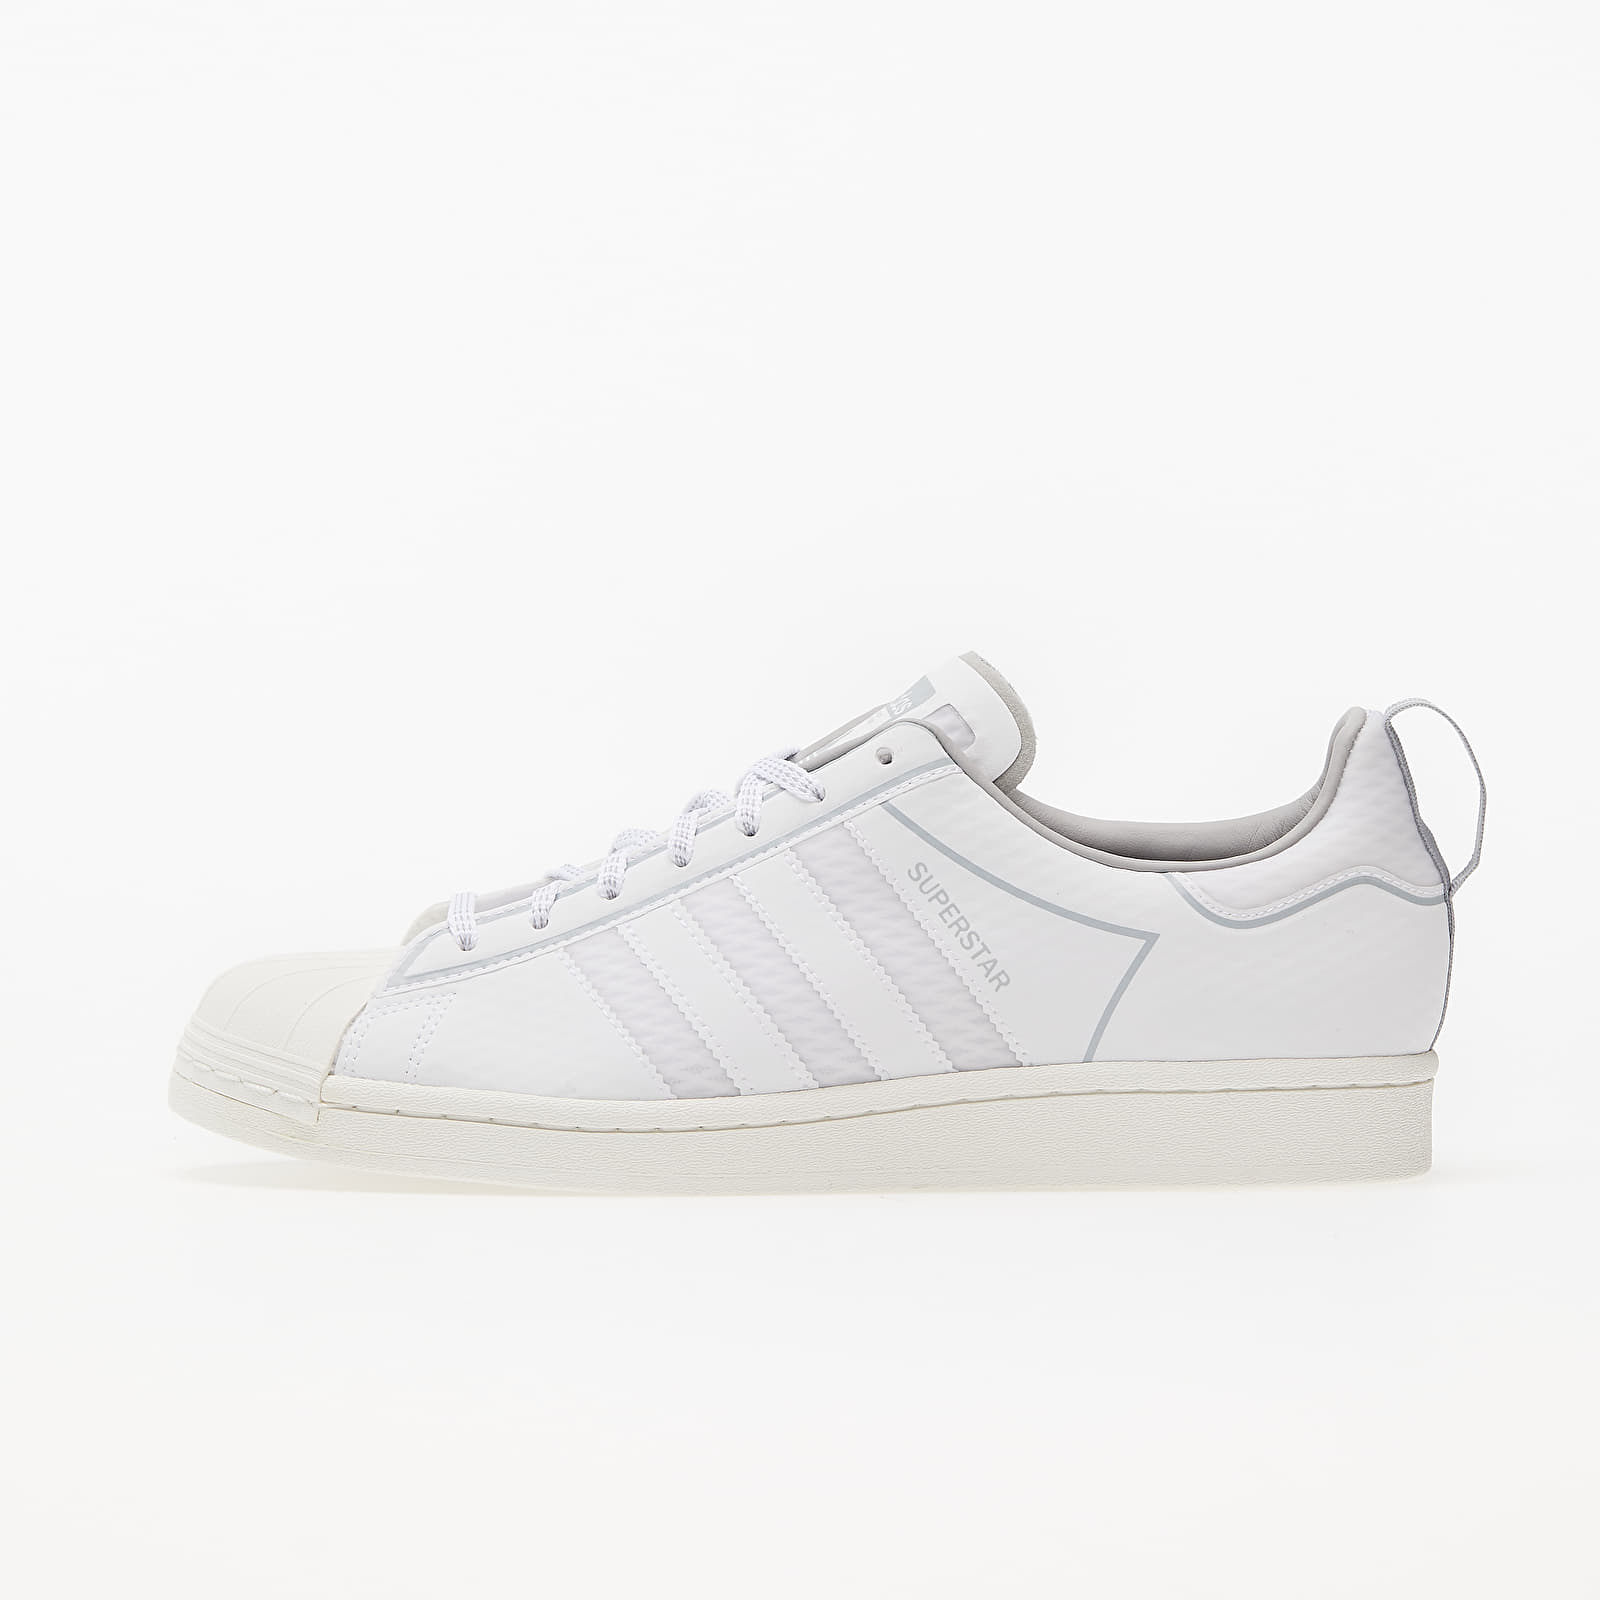 adidas Superstar Ftw White/ Off White/ Grey One FW6014